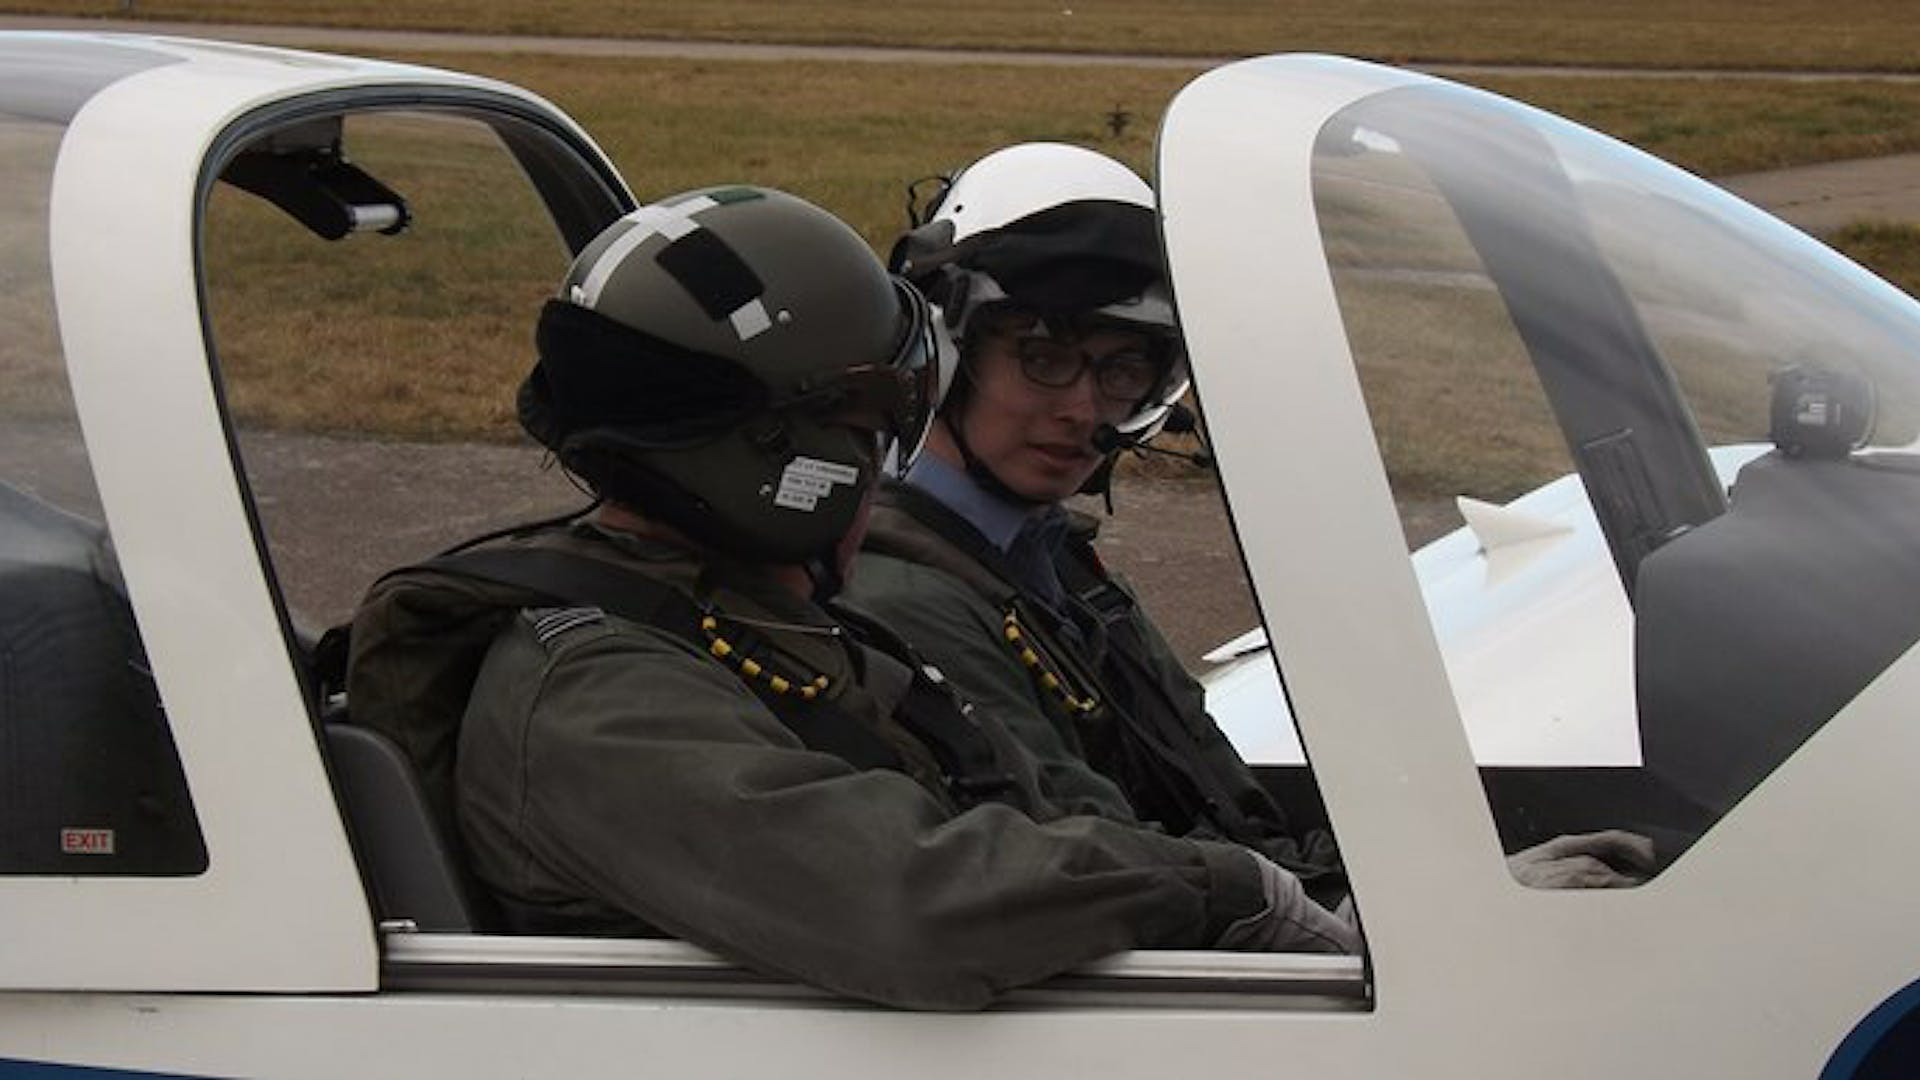 Connor in the aircraft chatting with the pilot small 1